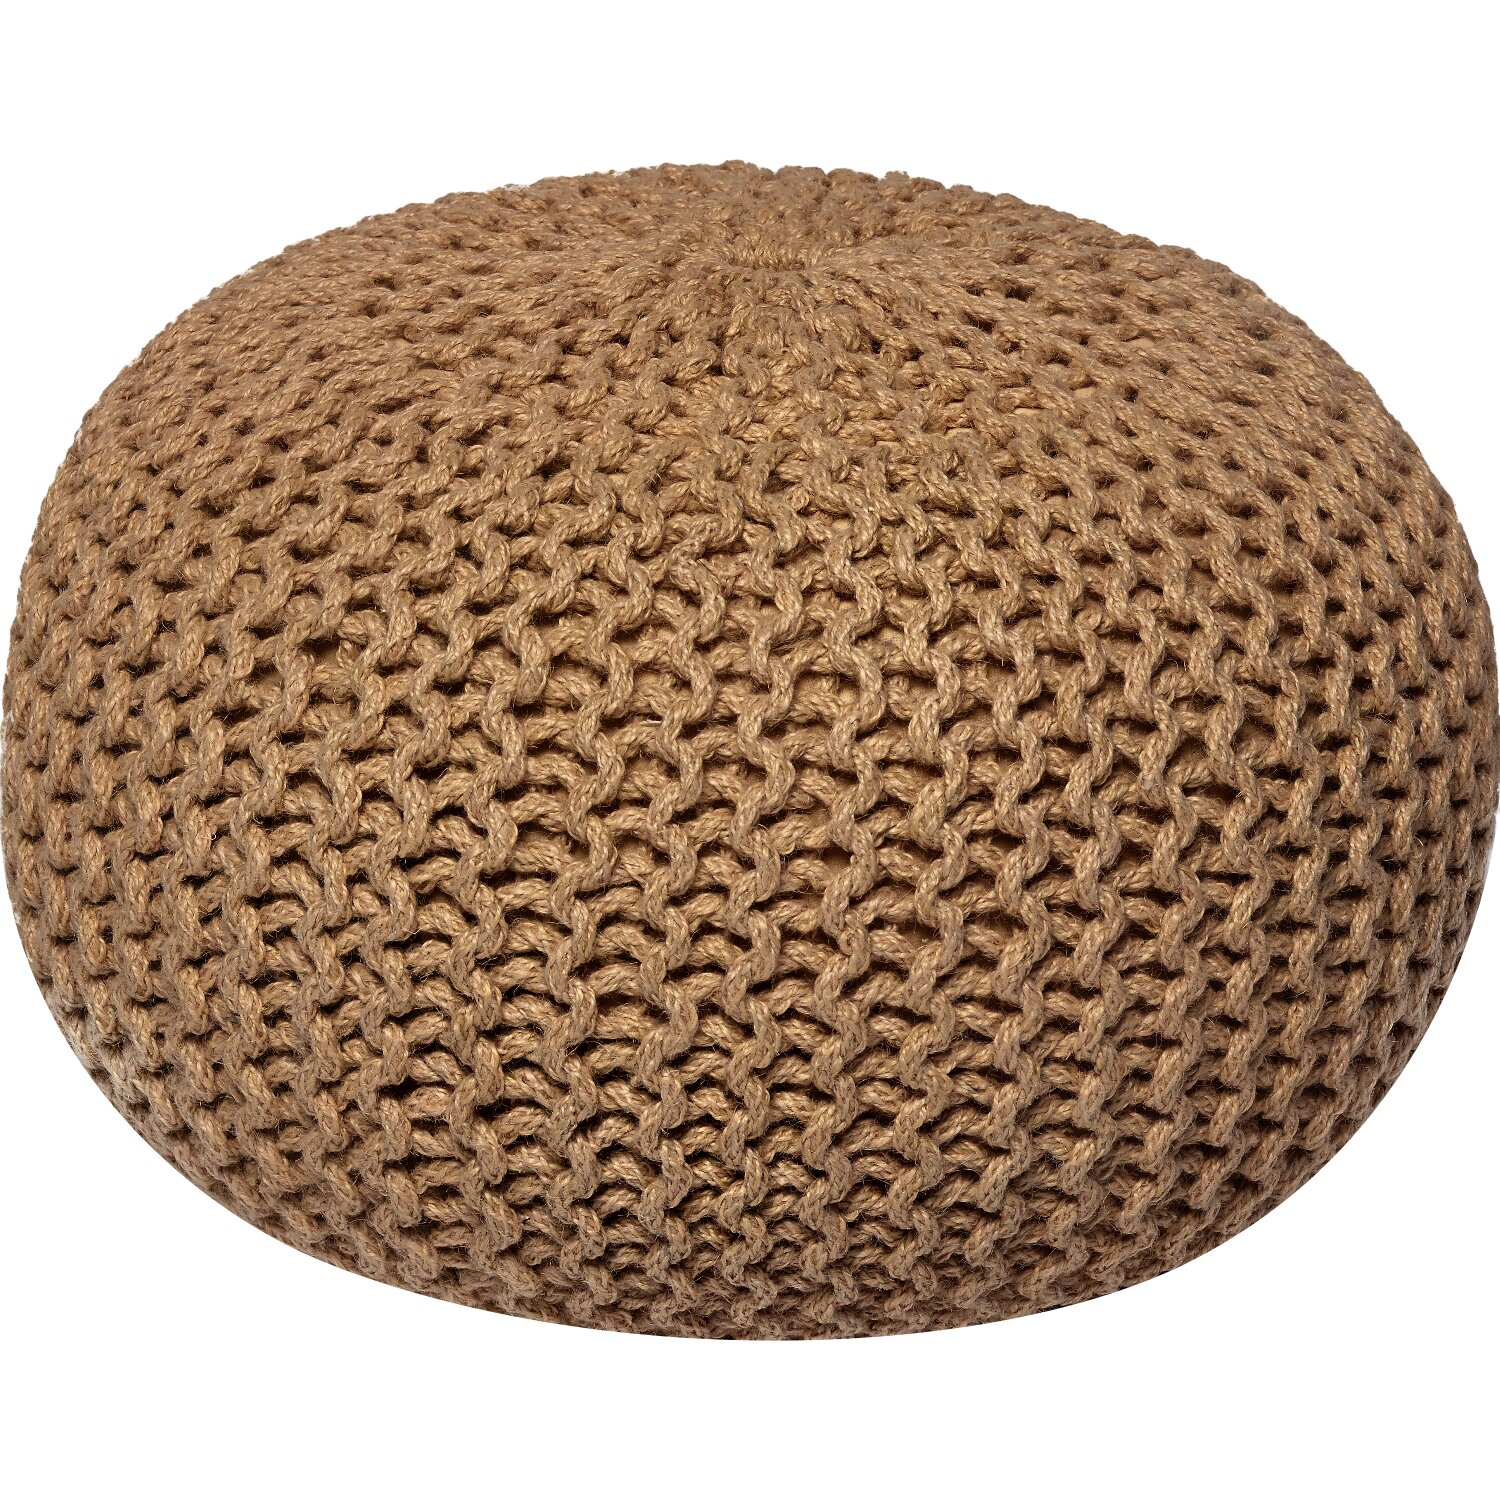 wildon home corded jute round pouf ottoman reviews wayfair. Black Bedroom Furniture Sets. Home Design Ideas